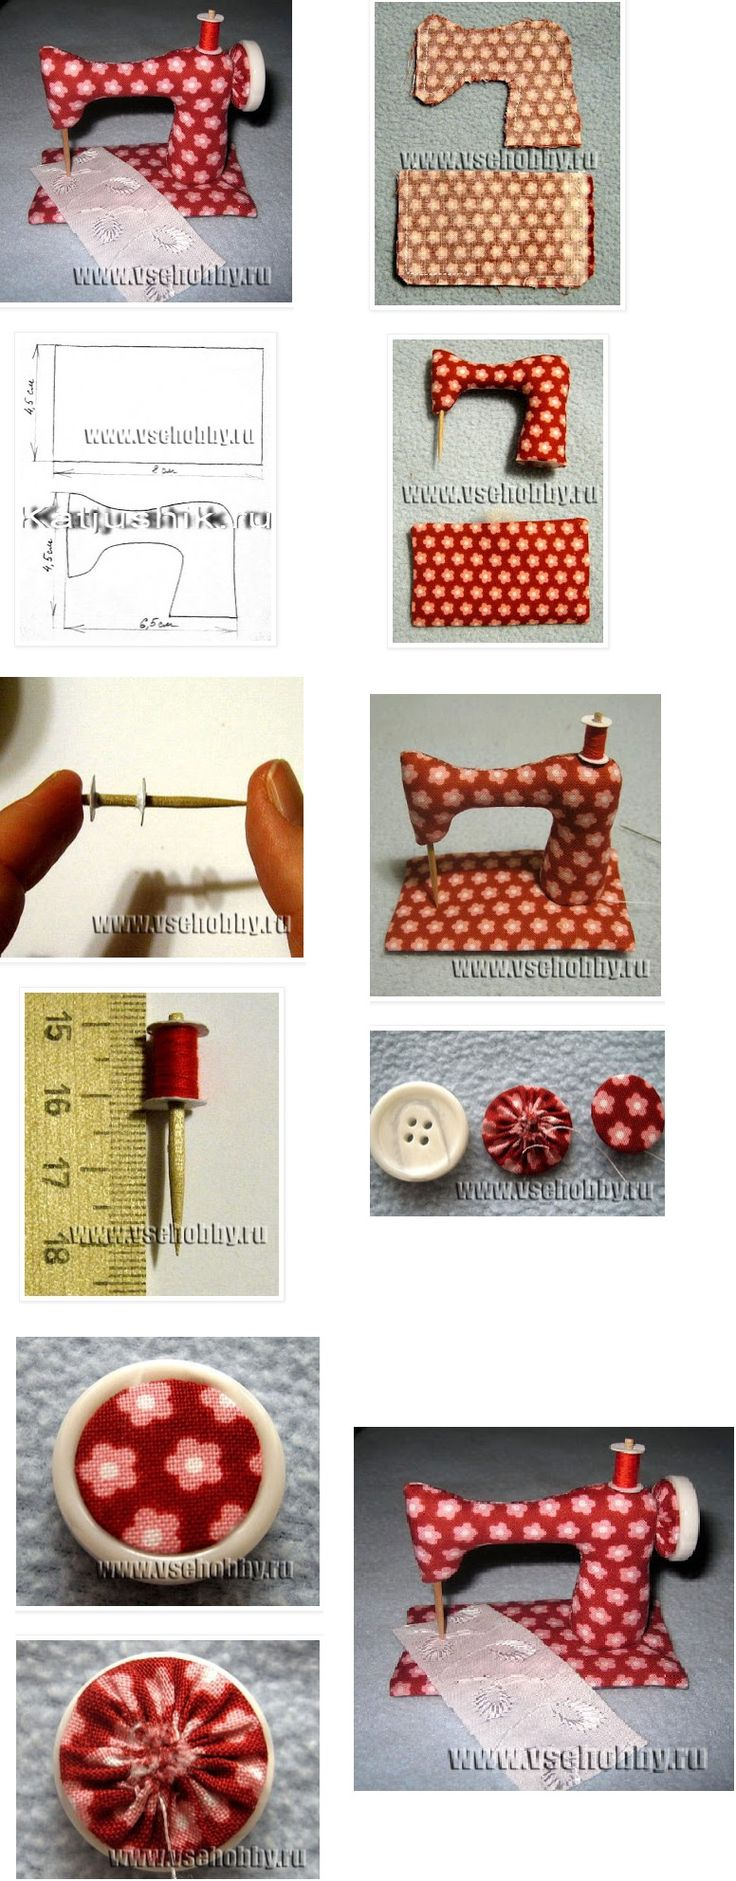 Cute sewing machine pincushion.